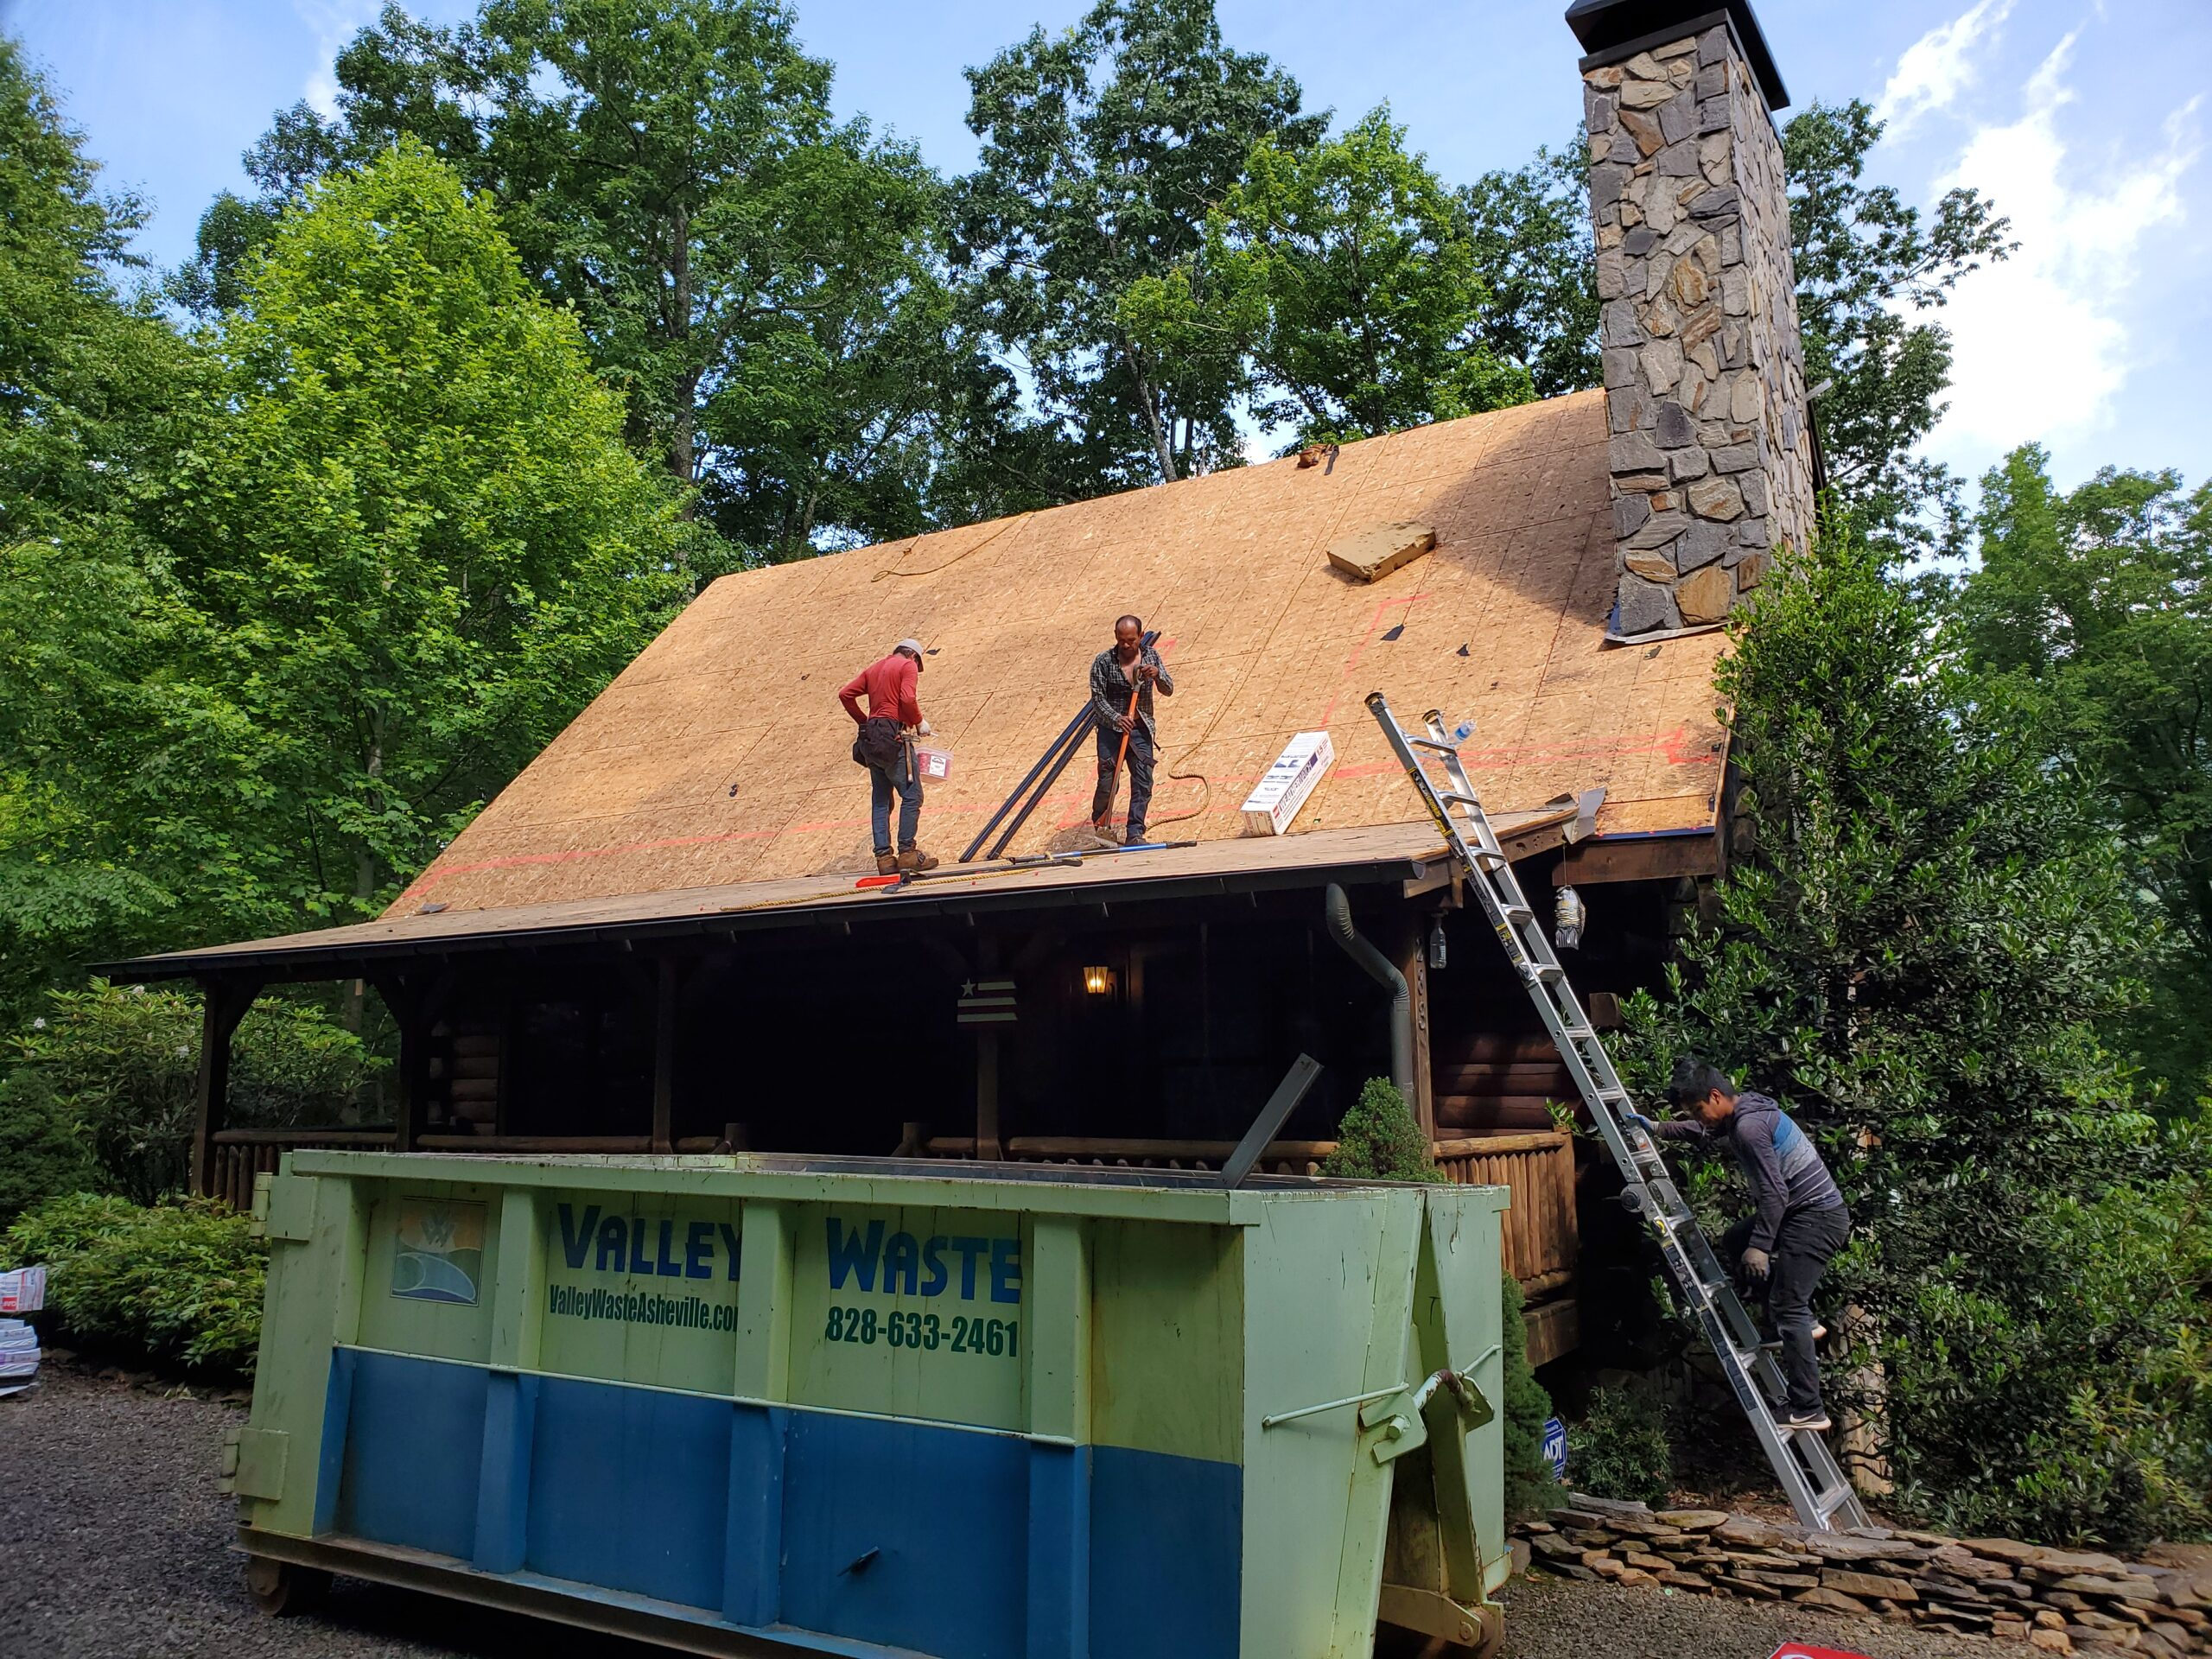 All shingles off the roof